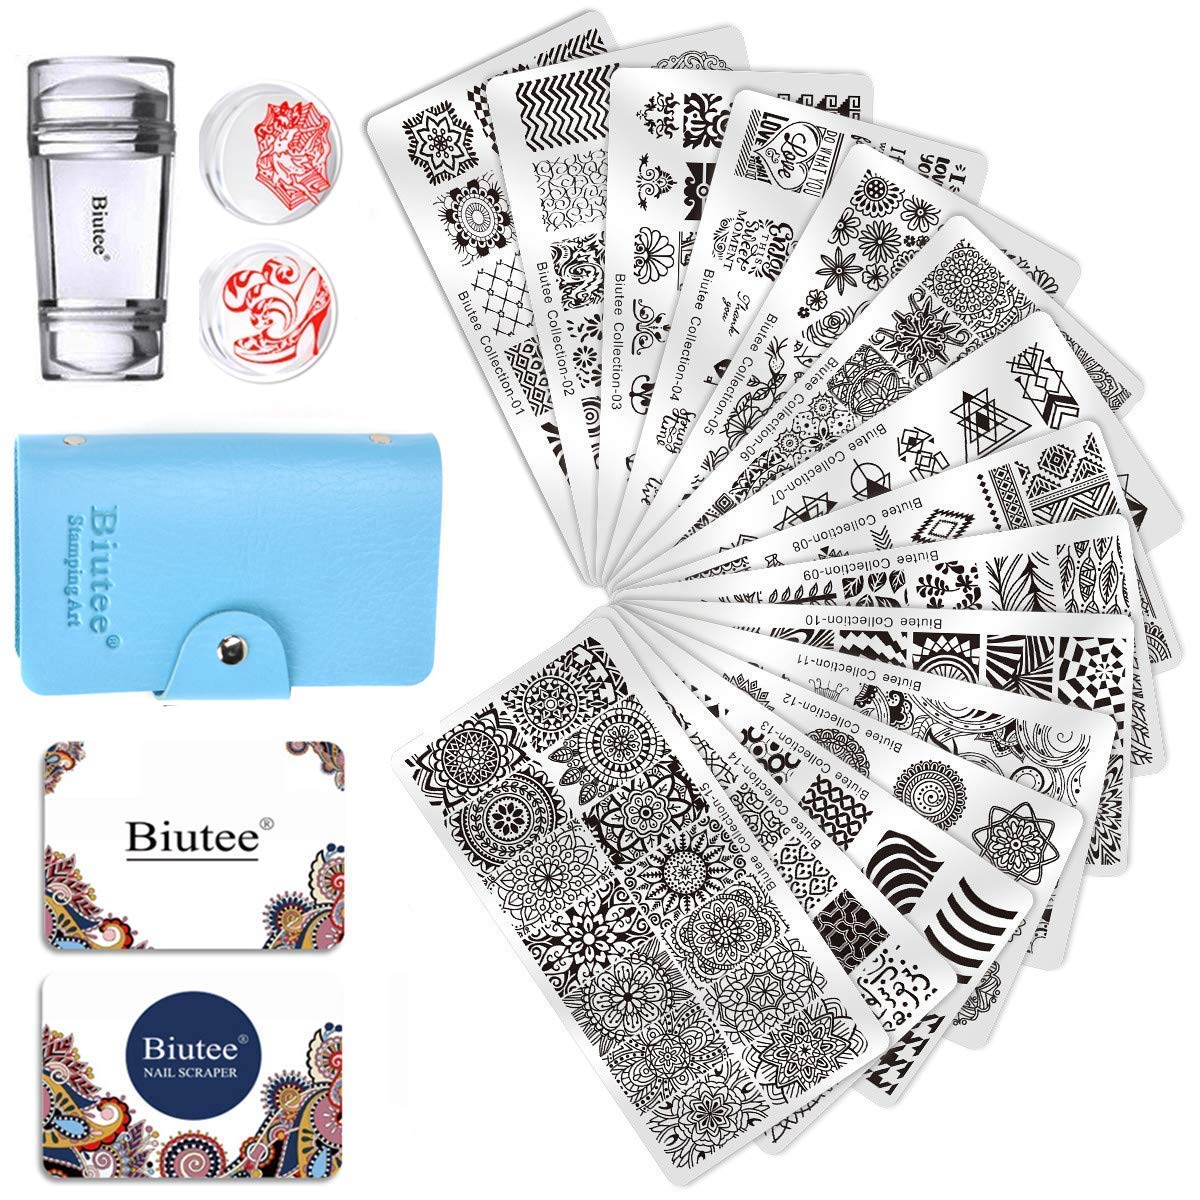 Biutee 19 PCS Nail Art Stamping Plate Kit 15Pcs Template Plates 1 Clear Stamper 2 Scraper 1 Storage Bag Nail Stamps tool Set for Organizer Theme Image Plate for Leaves Flowers Animal Holiday